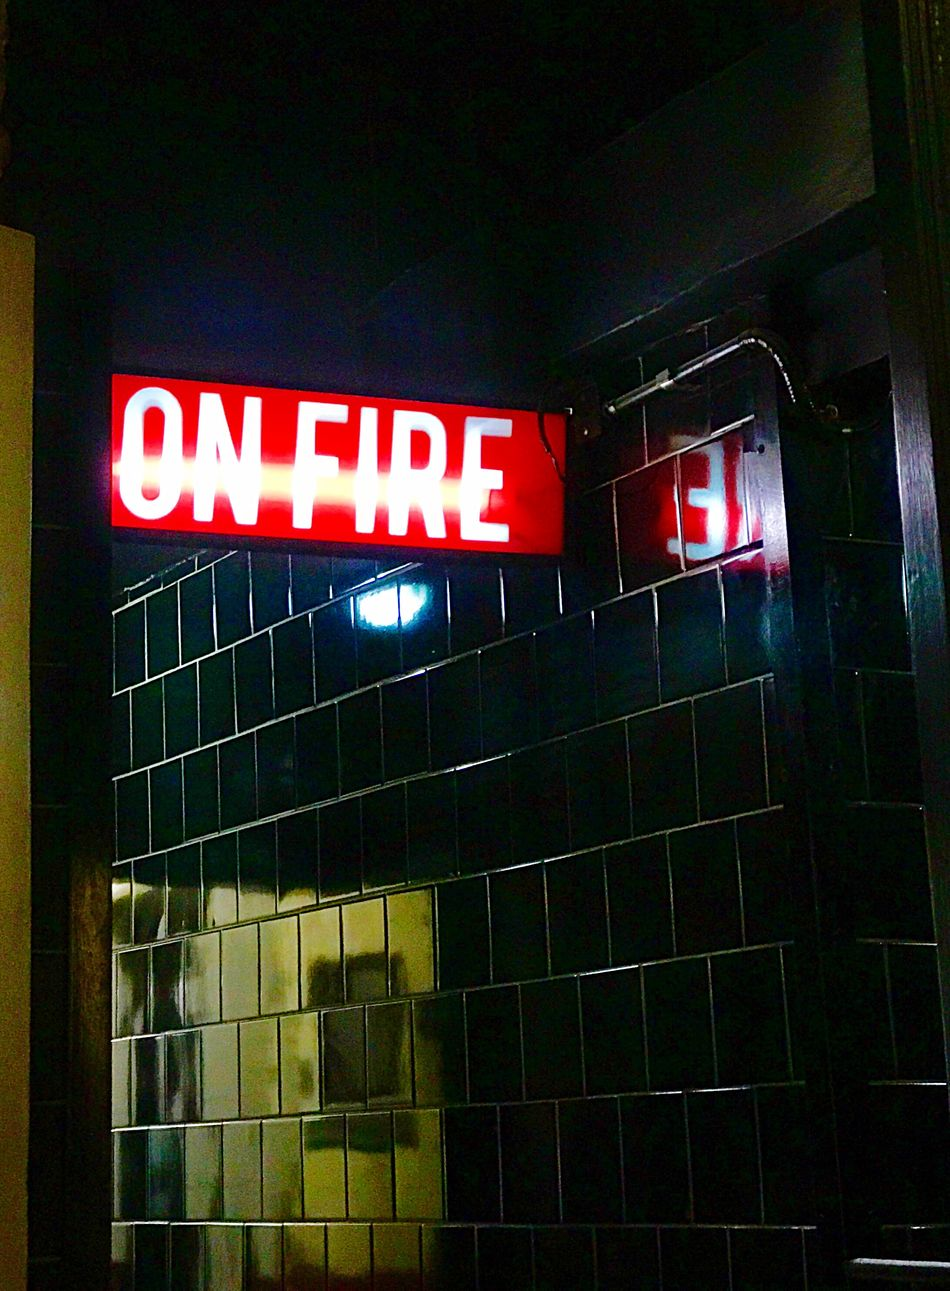 Illuminated No People Hospital Built Structure Indoors  Night Architecture On Fire Onfire Onfire🔥 On Fire 😁 Sign Guerrin, La Mejor Pizza De Buenos Aires Guerrin